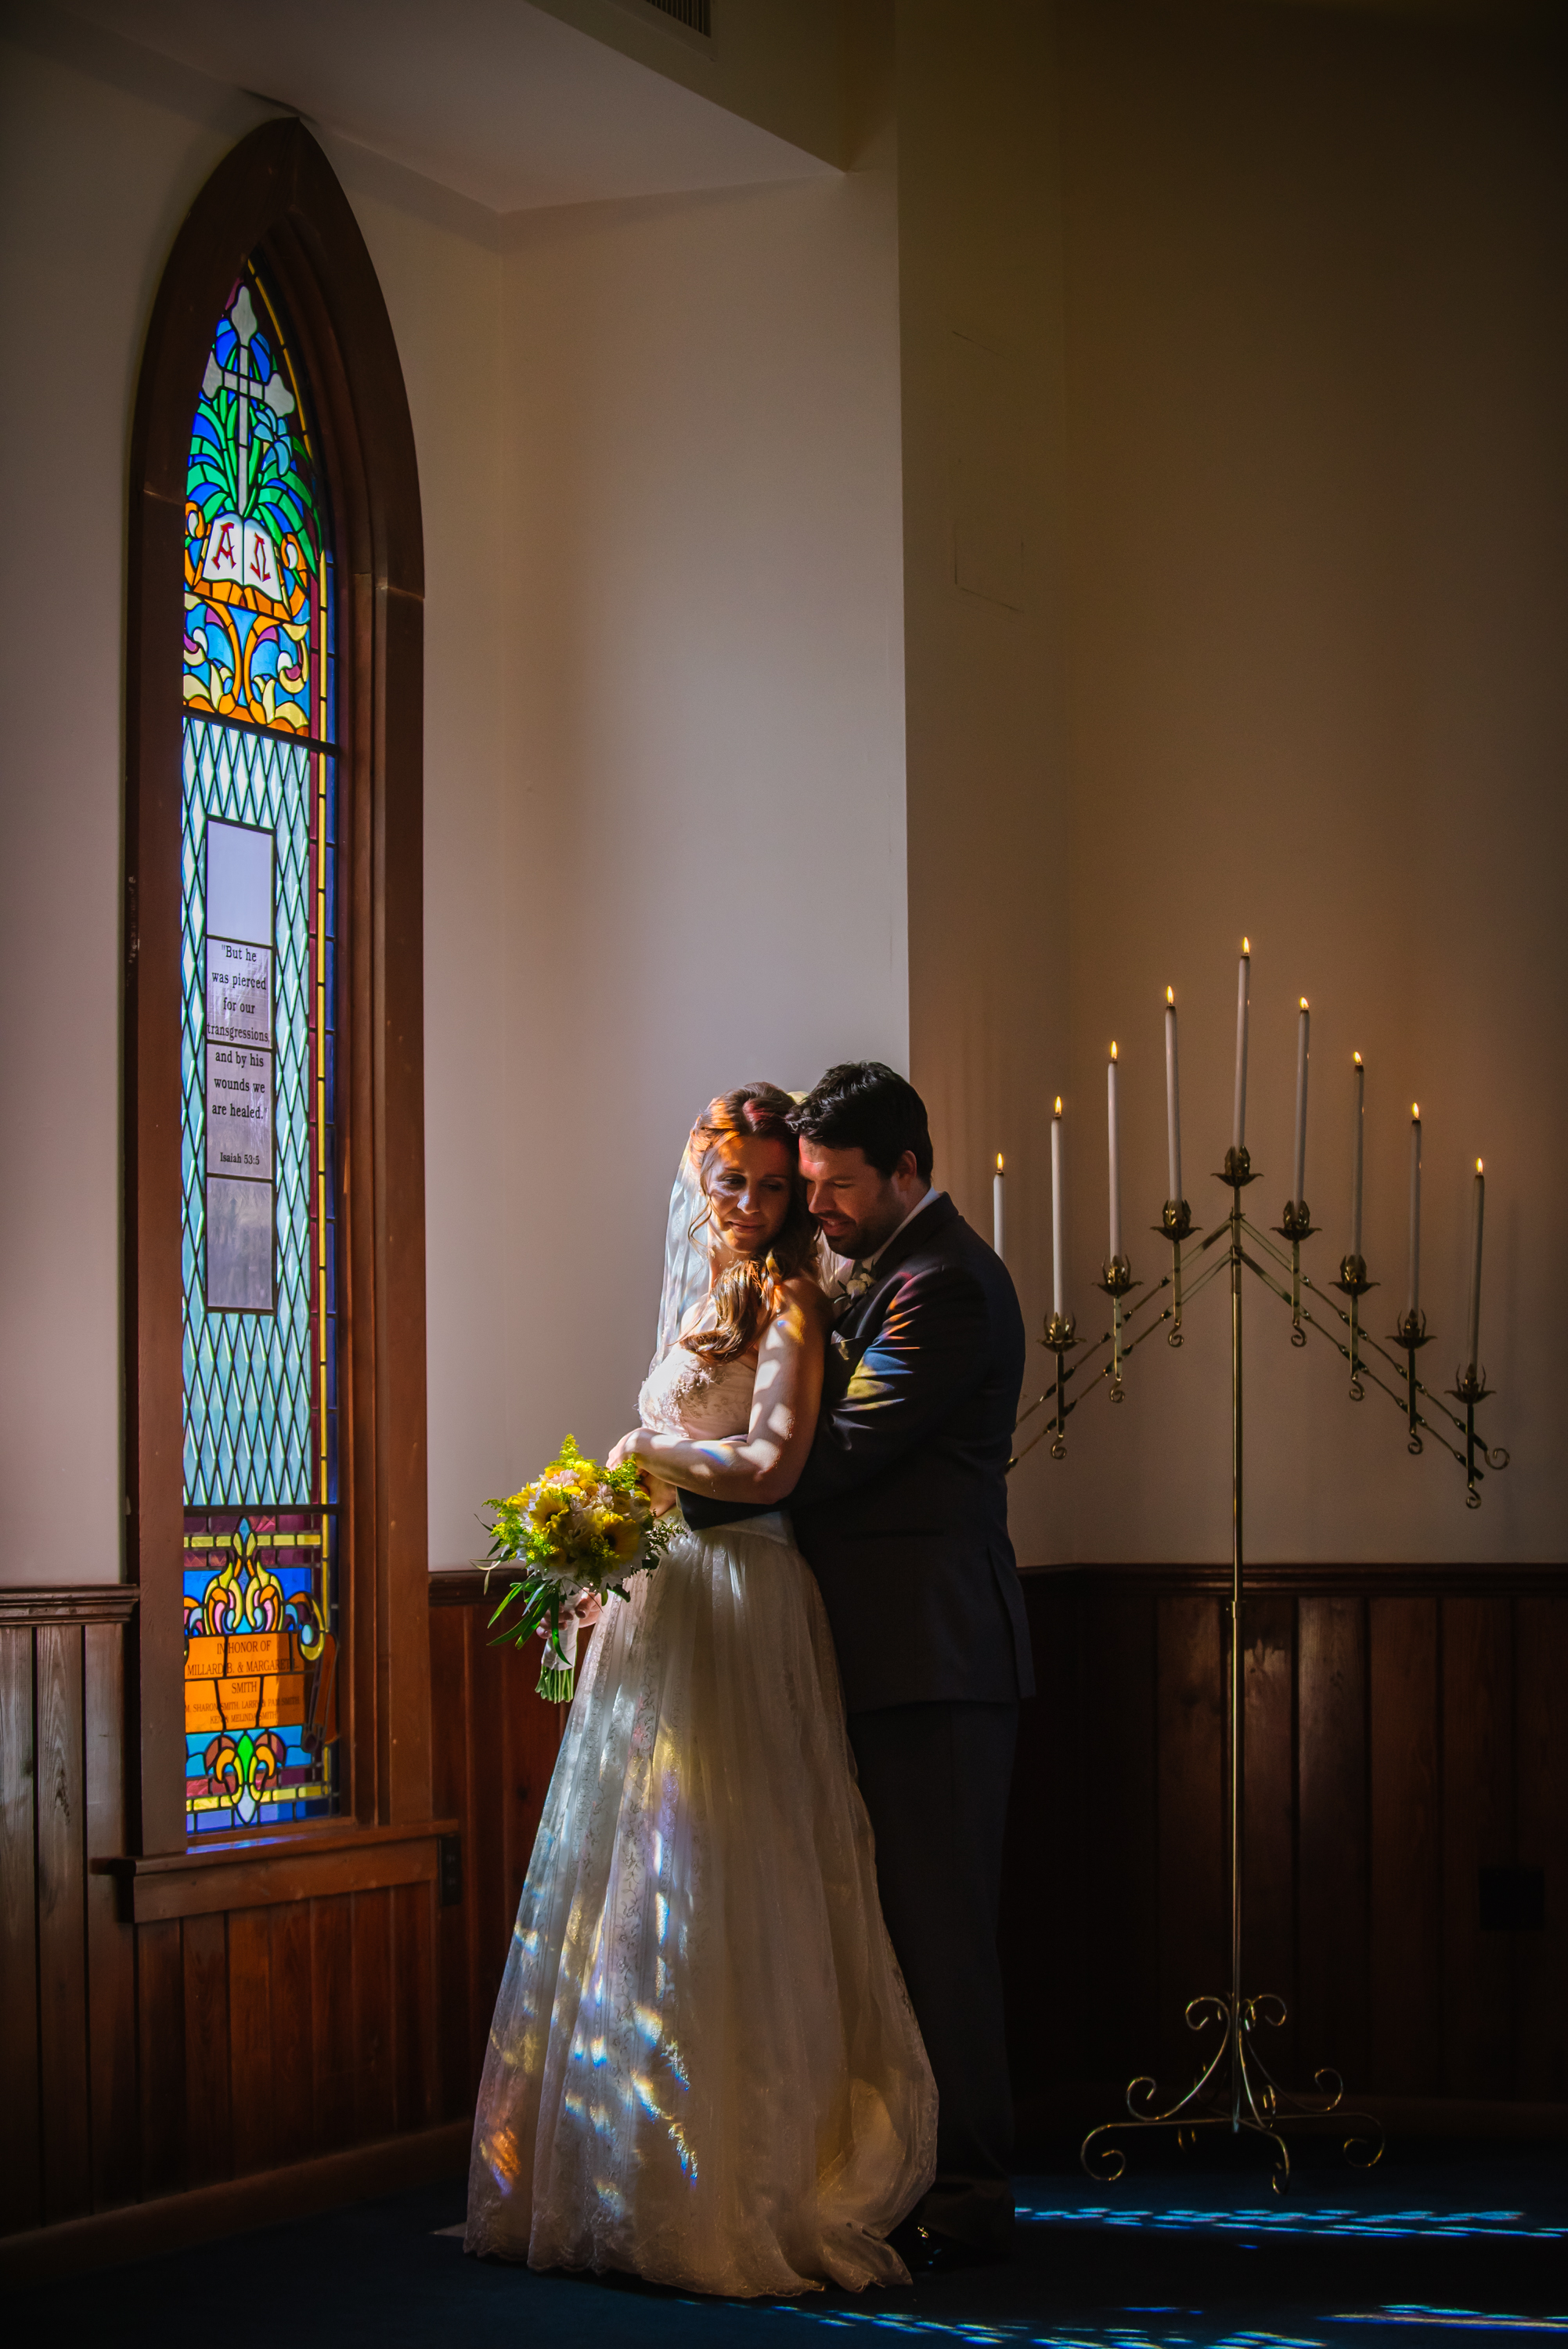 Awww Lindsey & Brad are traditional and deep. I couldn't resist the light coming through the stained glass at their chapel and their classic embrace fit just right.